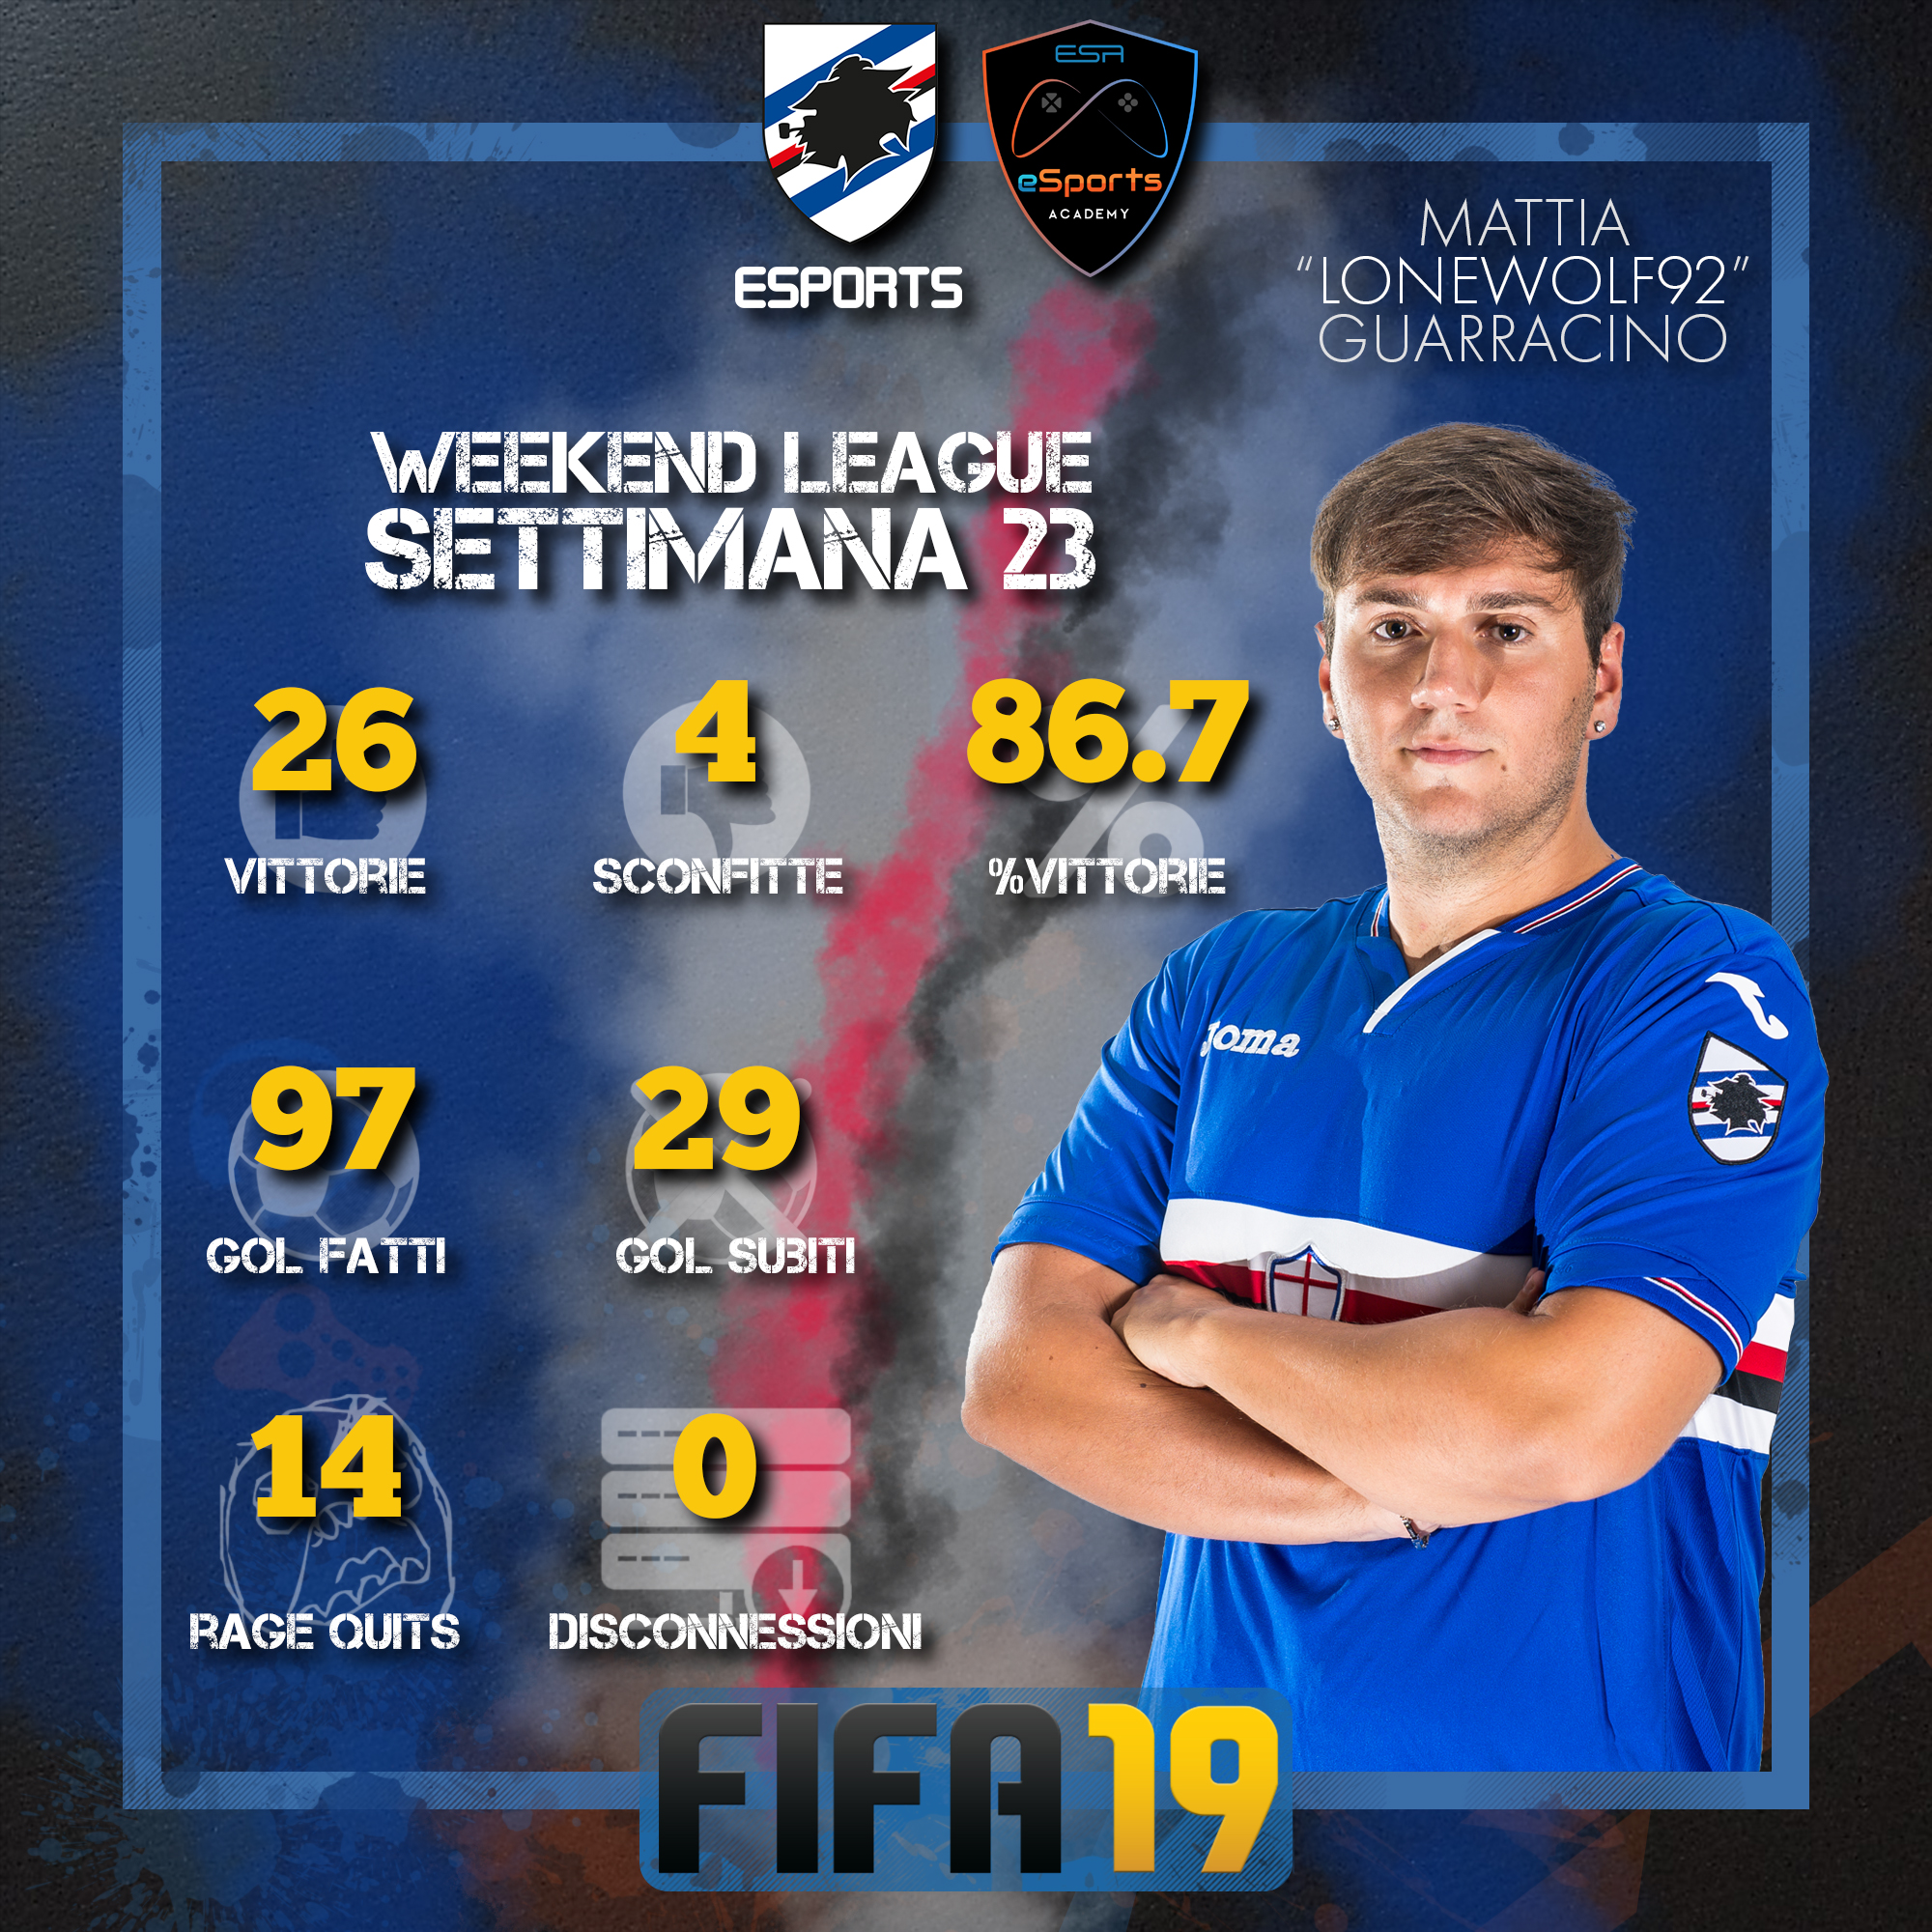 Fifa19_Weekend League_Week23_Lonewolf92.jpg